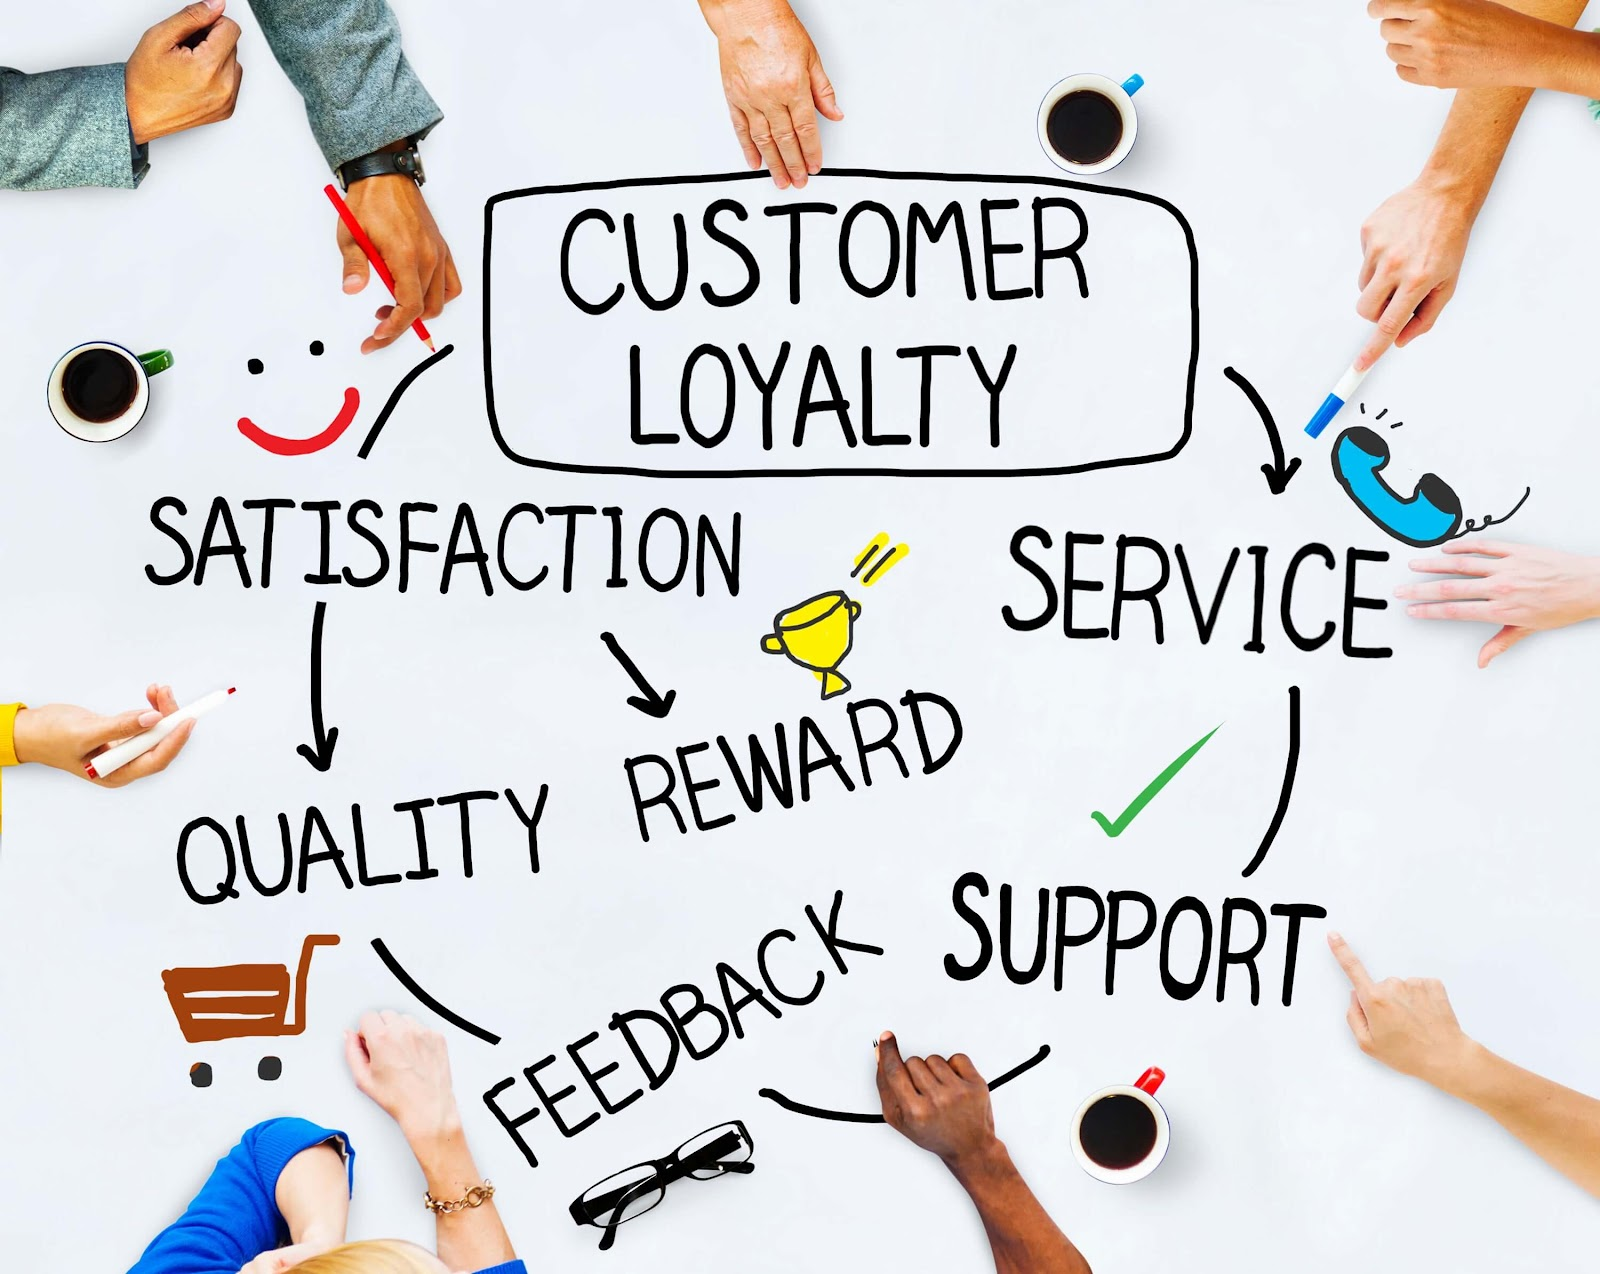 Mobile apps ecommerce promote customer loyalty